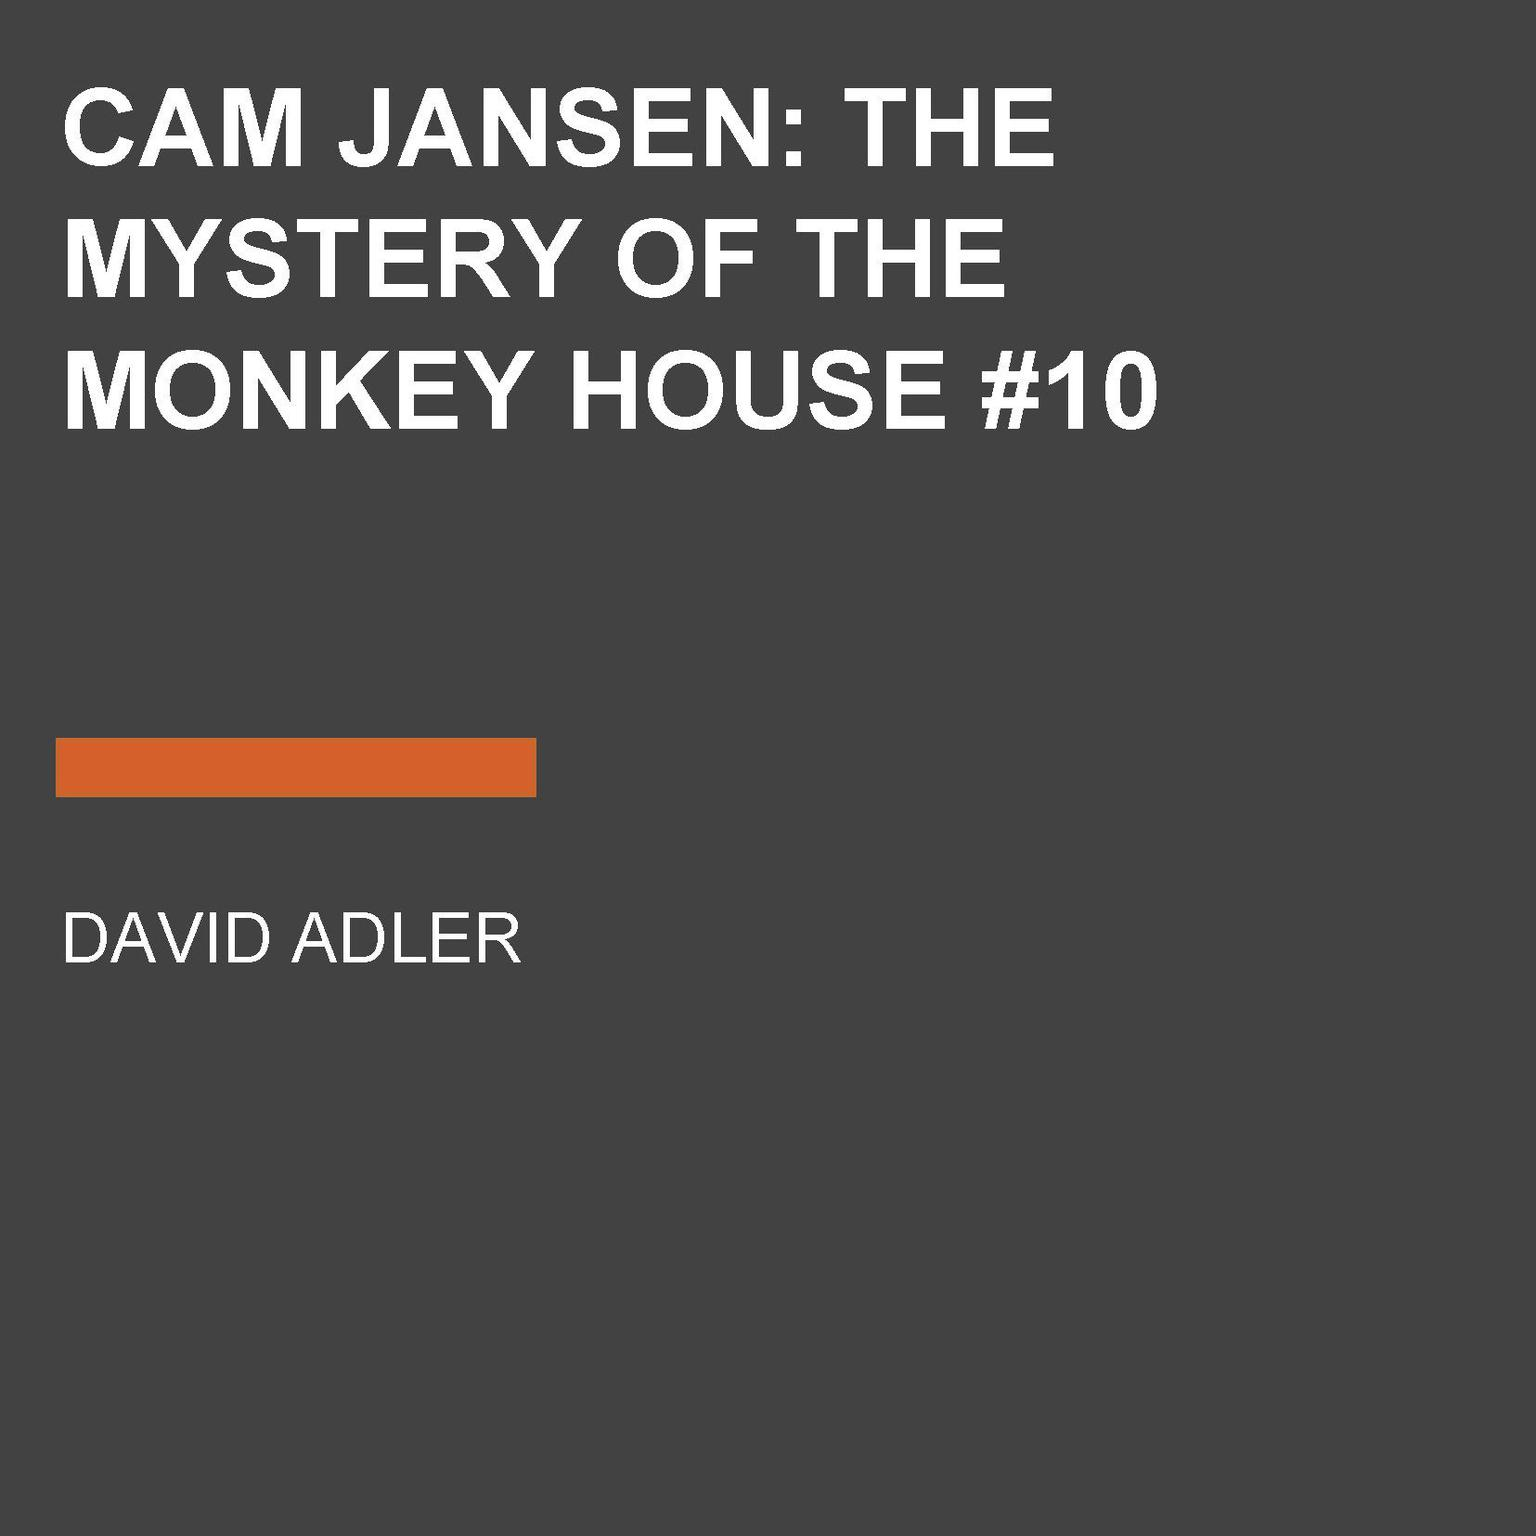 Printable Cam Jansen: the Mystery of the Monkey House #10: The Mystery of the Monkey House Audiobook Cover Art